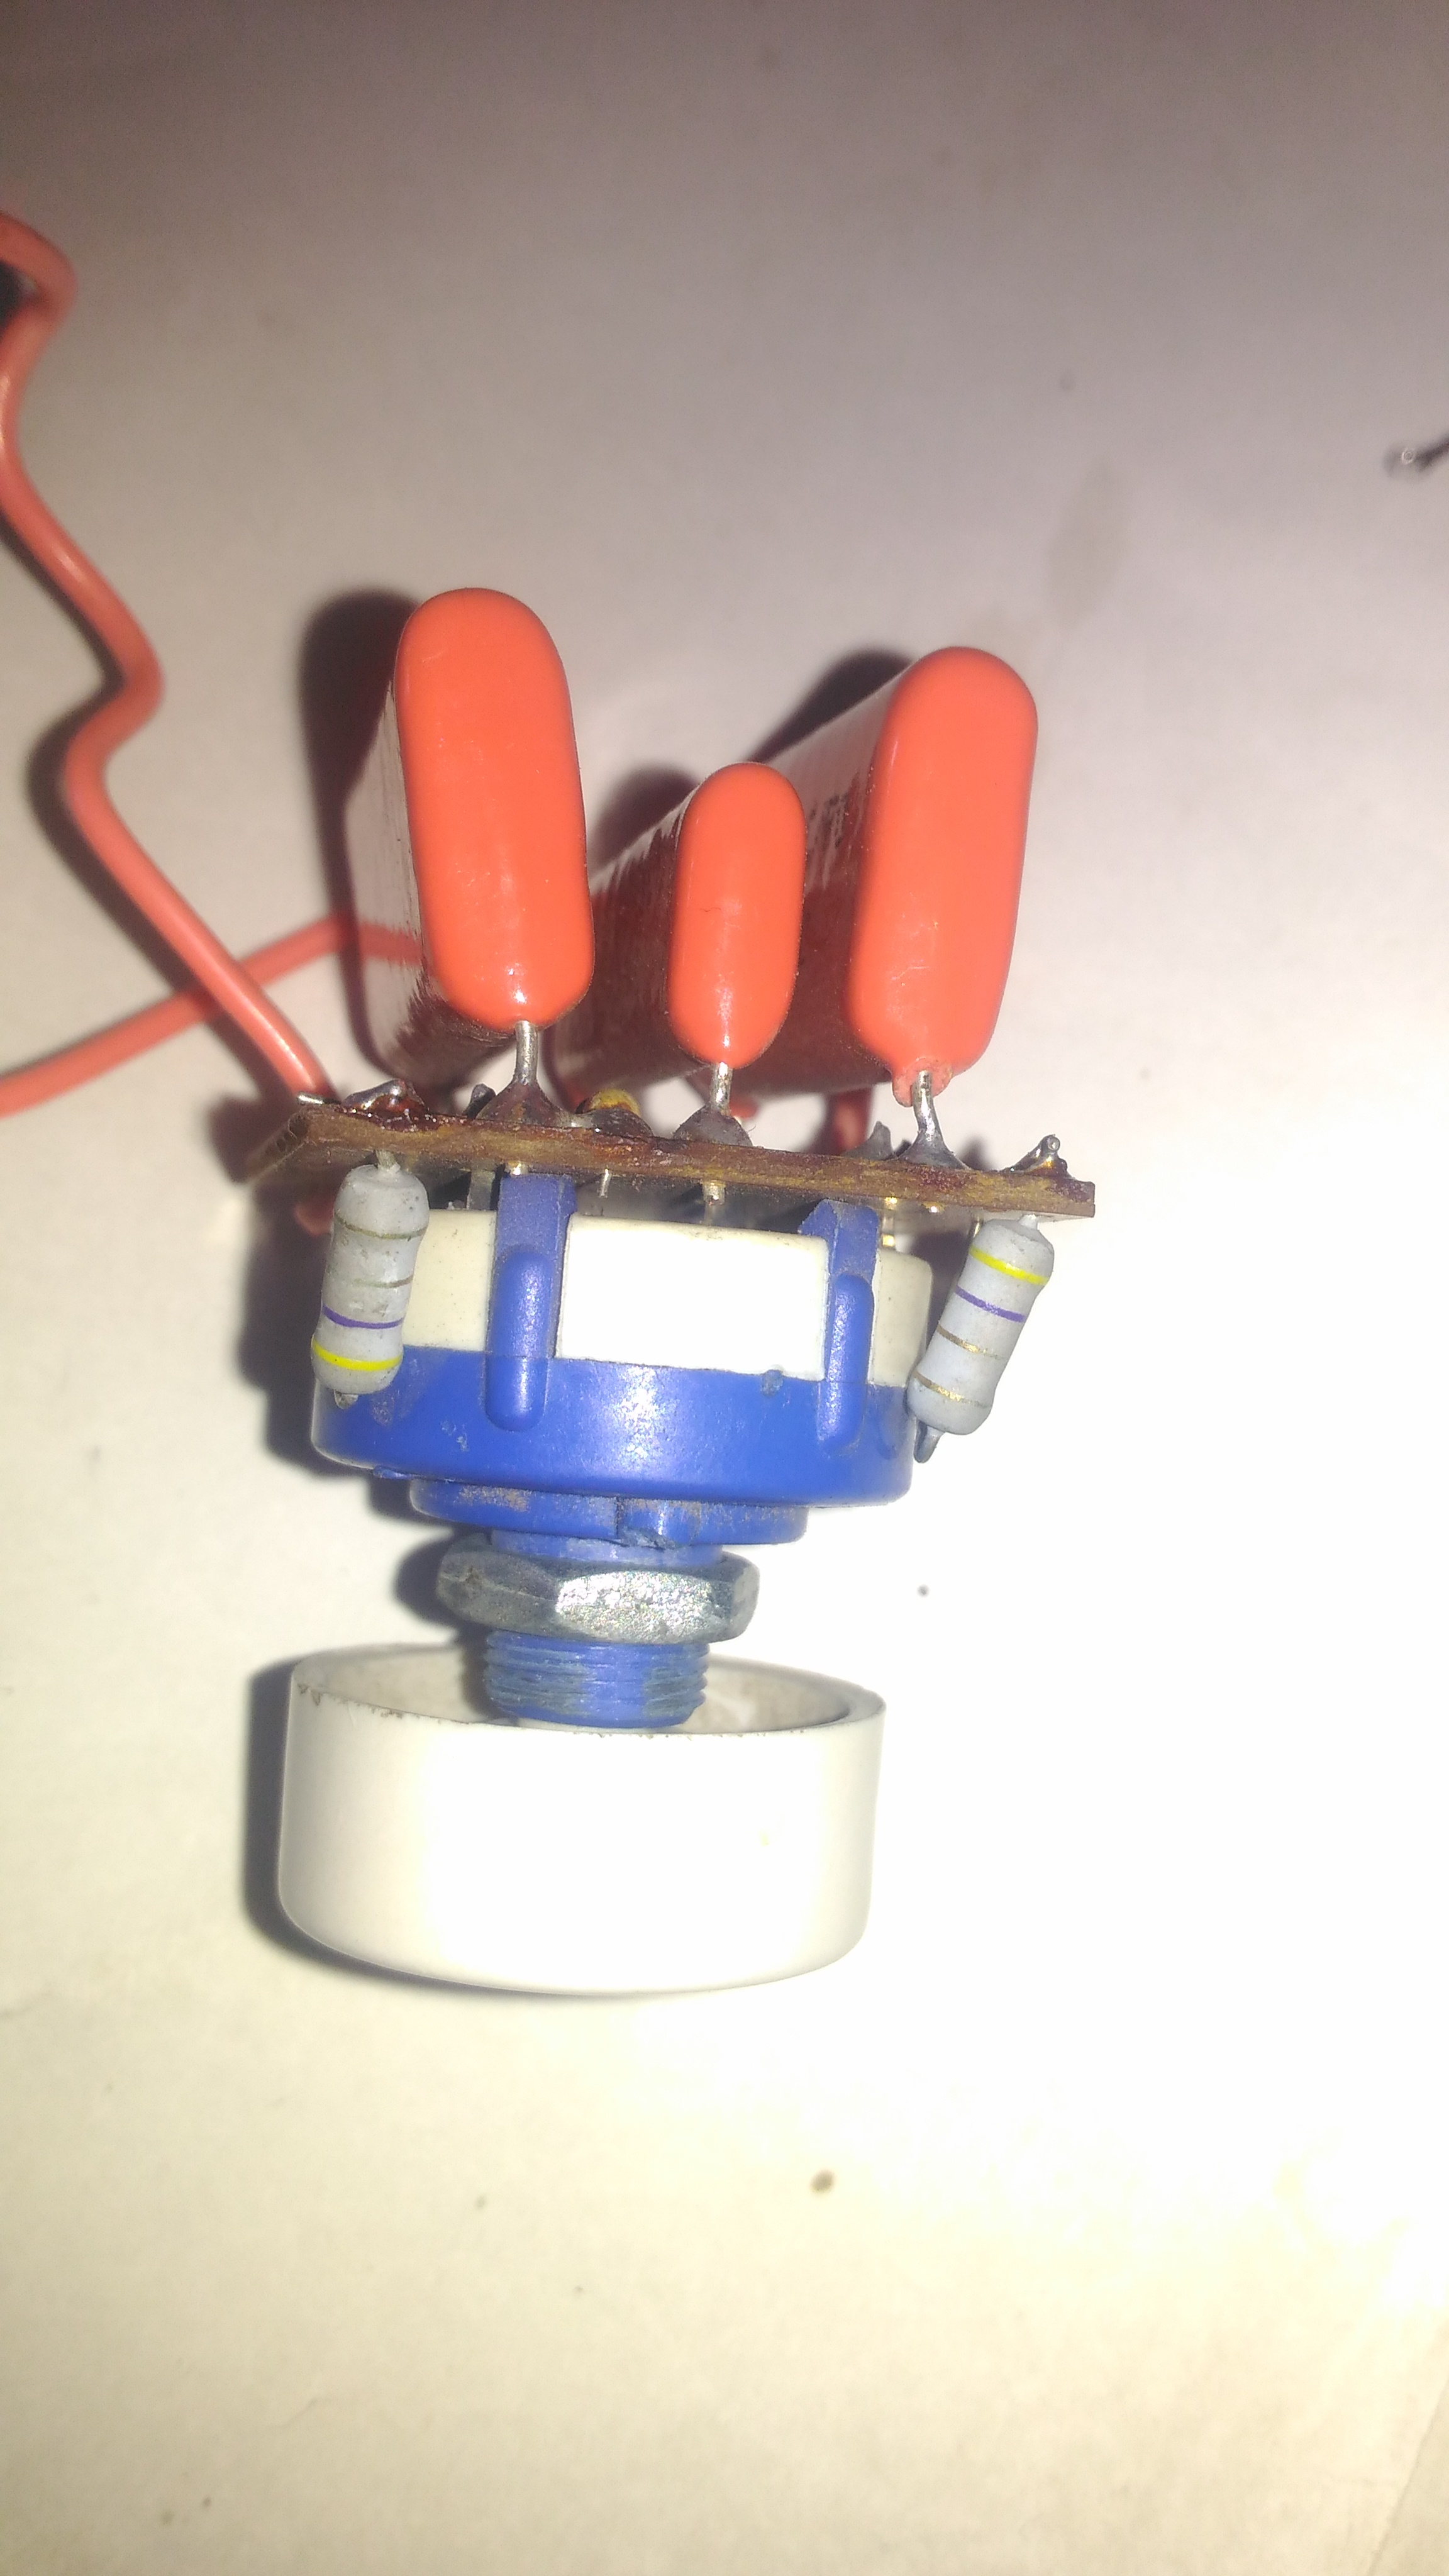 Capacitor Type Fan Control Wiring - Wiring Diagram List on harbor freight hoist repair, harbor freight hoist system, harbor freight hoist motor,